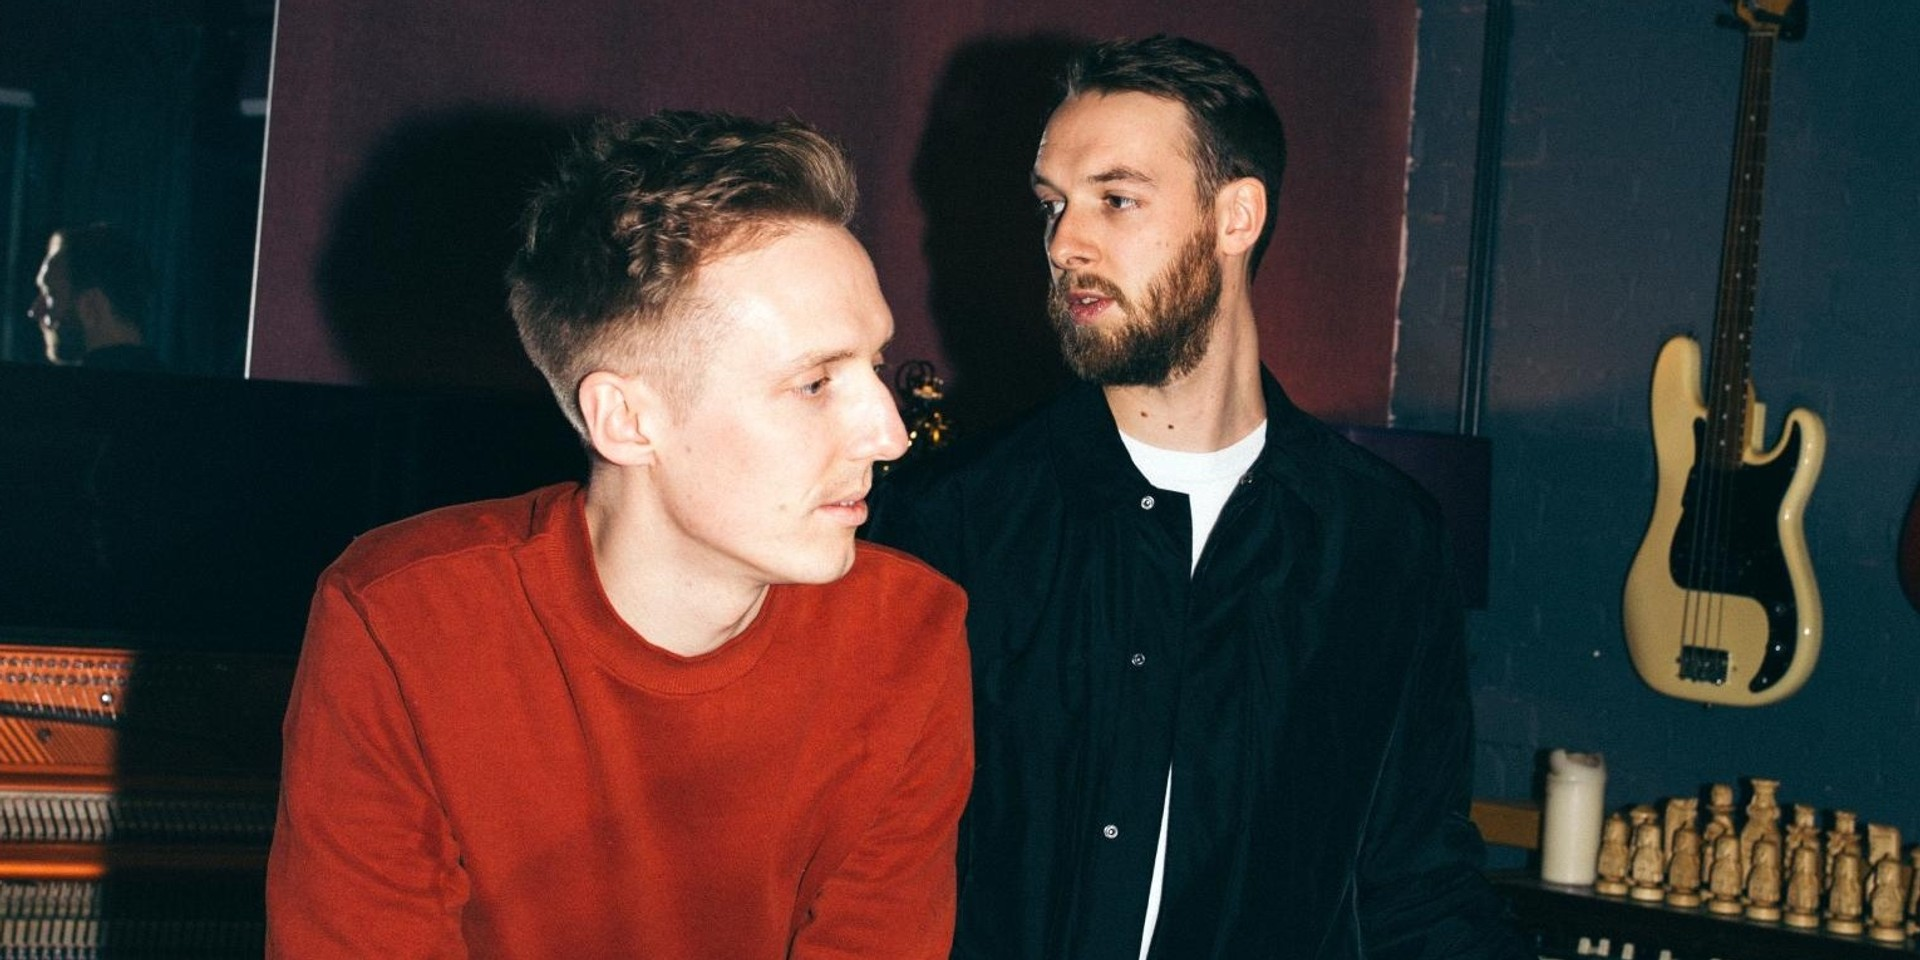 HONNE releases sheet music for 'no song without you', 'by my side', and 'la la la that's how it goes'